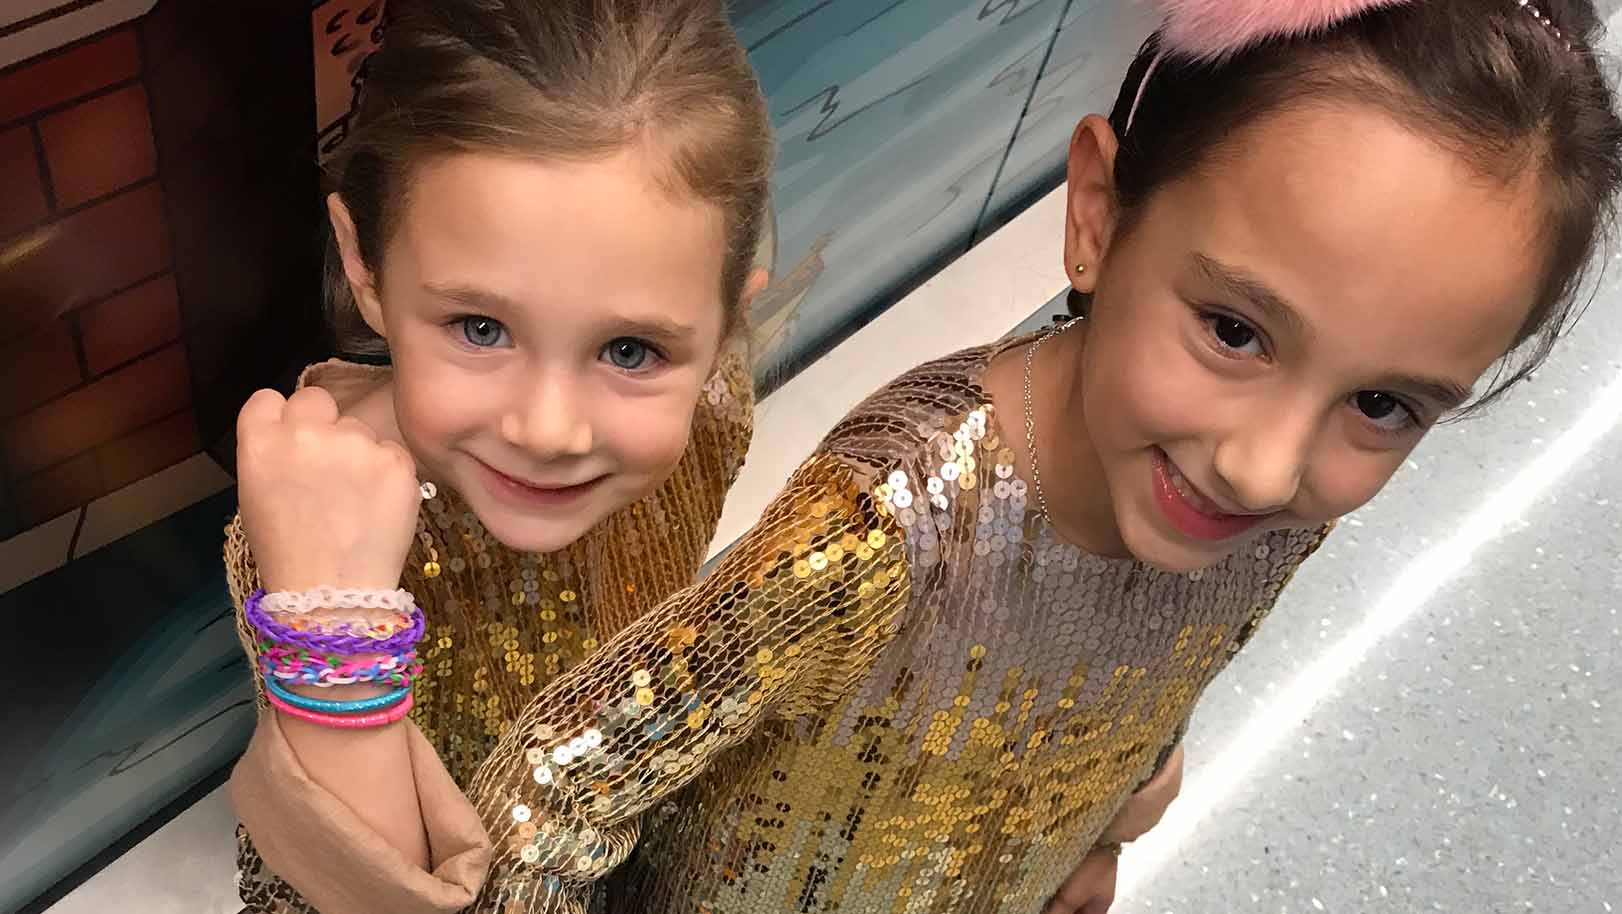 Sienna and Skye donated proceeds from their bracelet sales to Hassenfeld Children's Hospital